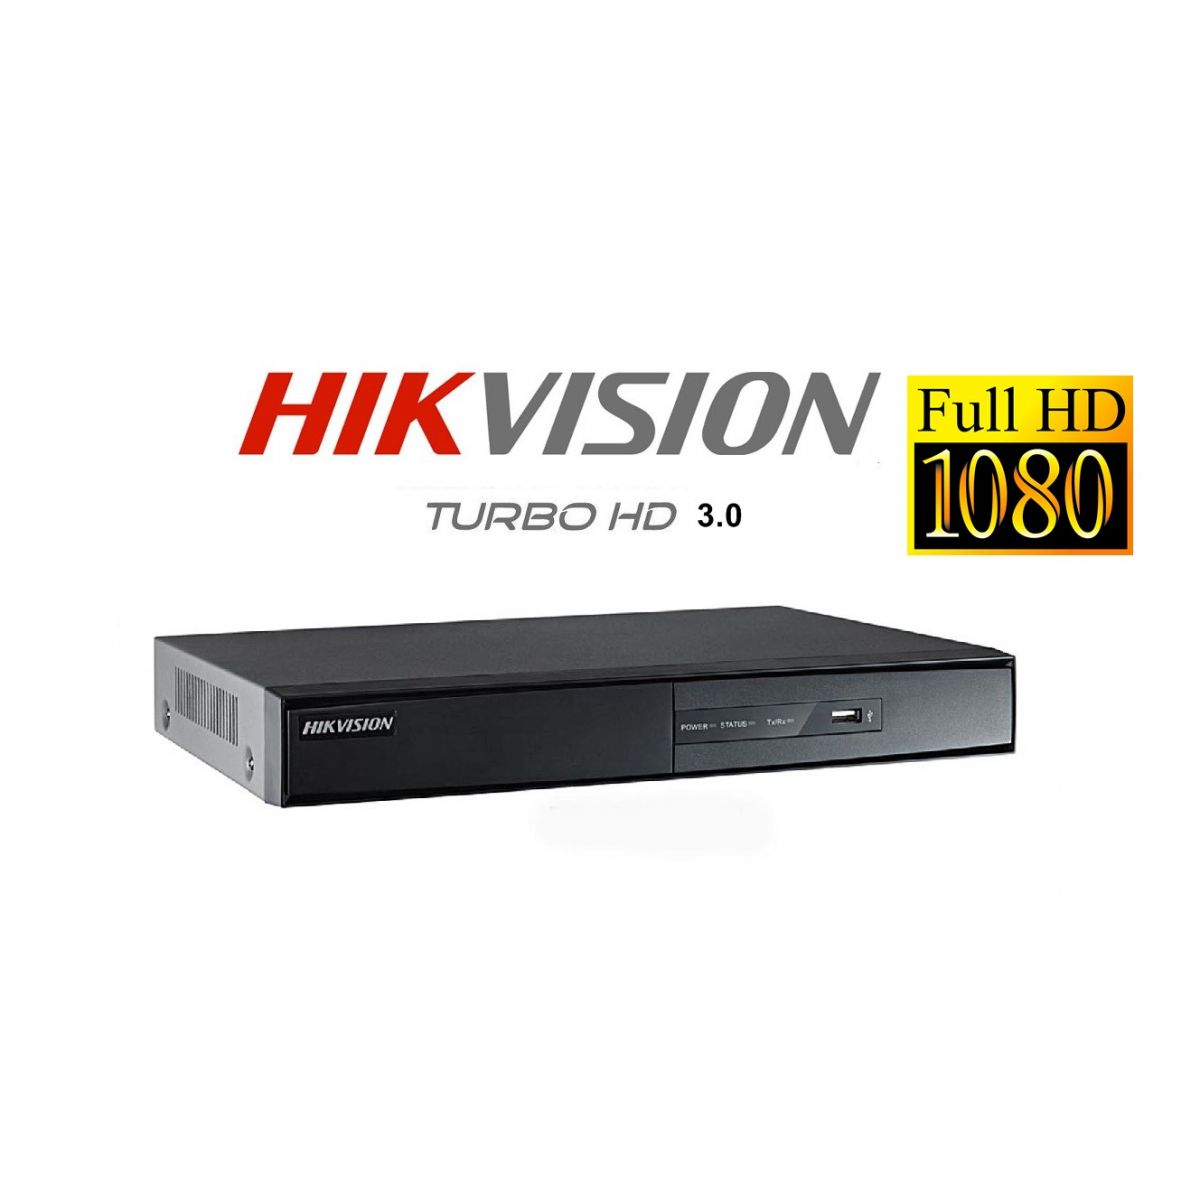 Dvr 4 ch. Hikvision Turbo Hd 3.0 Pentaflex 5x1 Full Hd 1080p